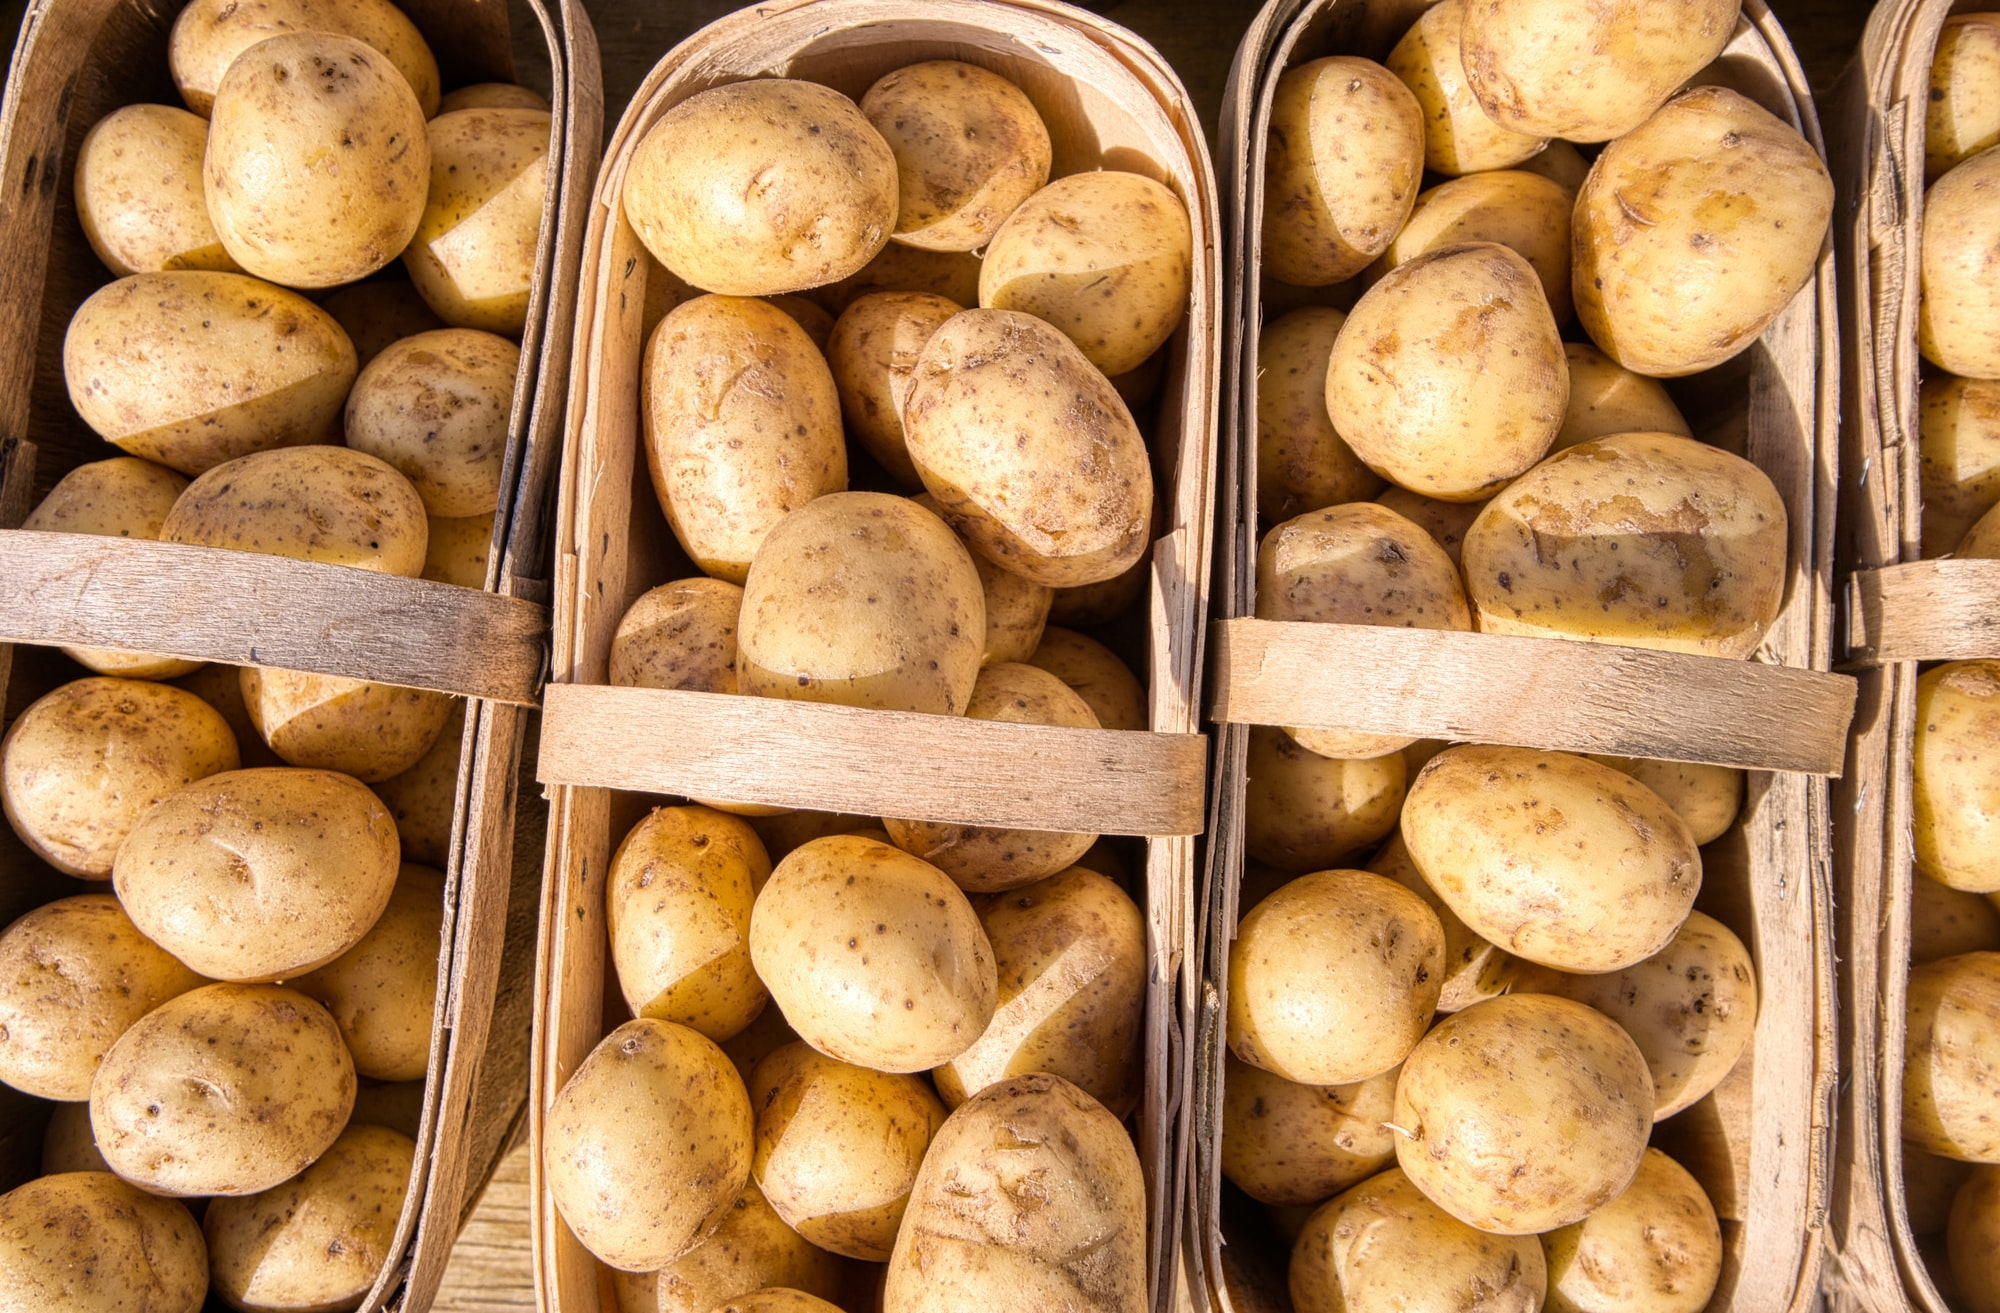 A close view of baskets of potatoes